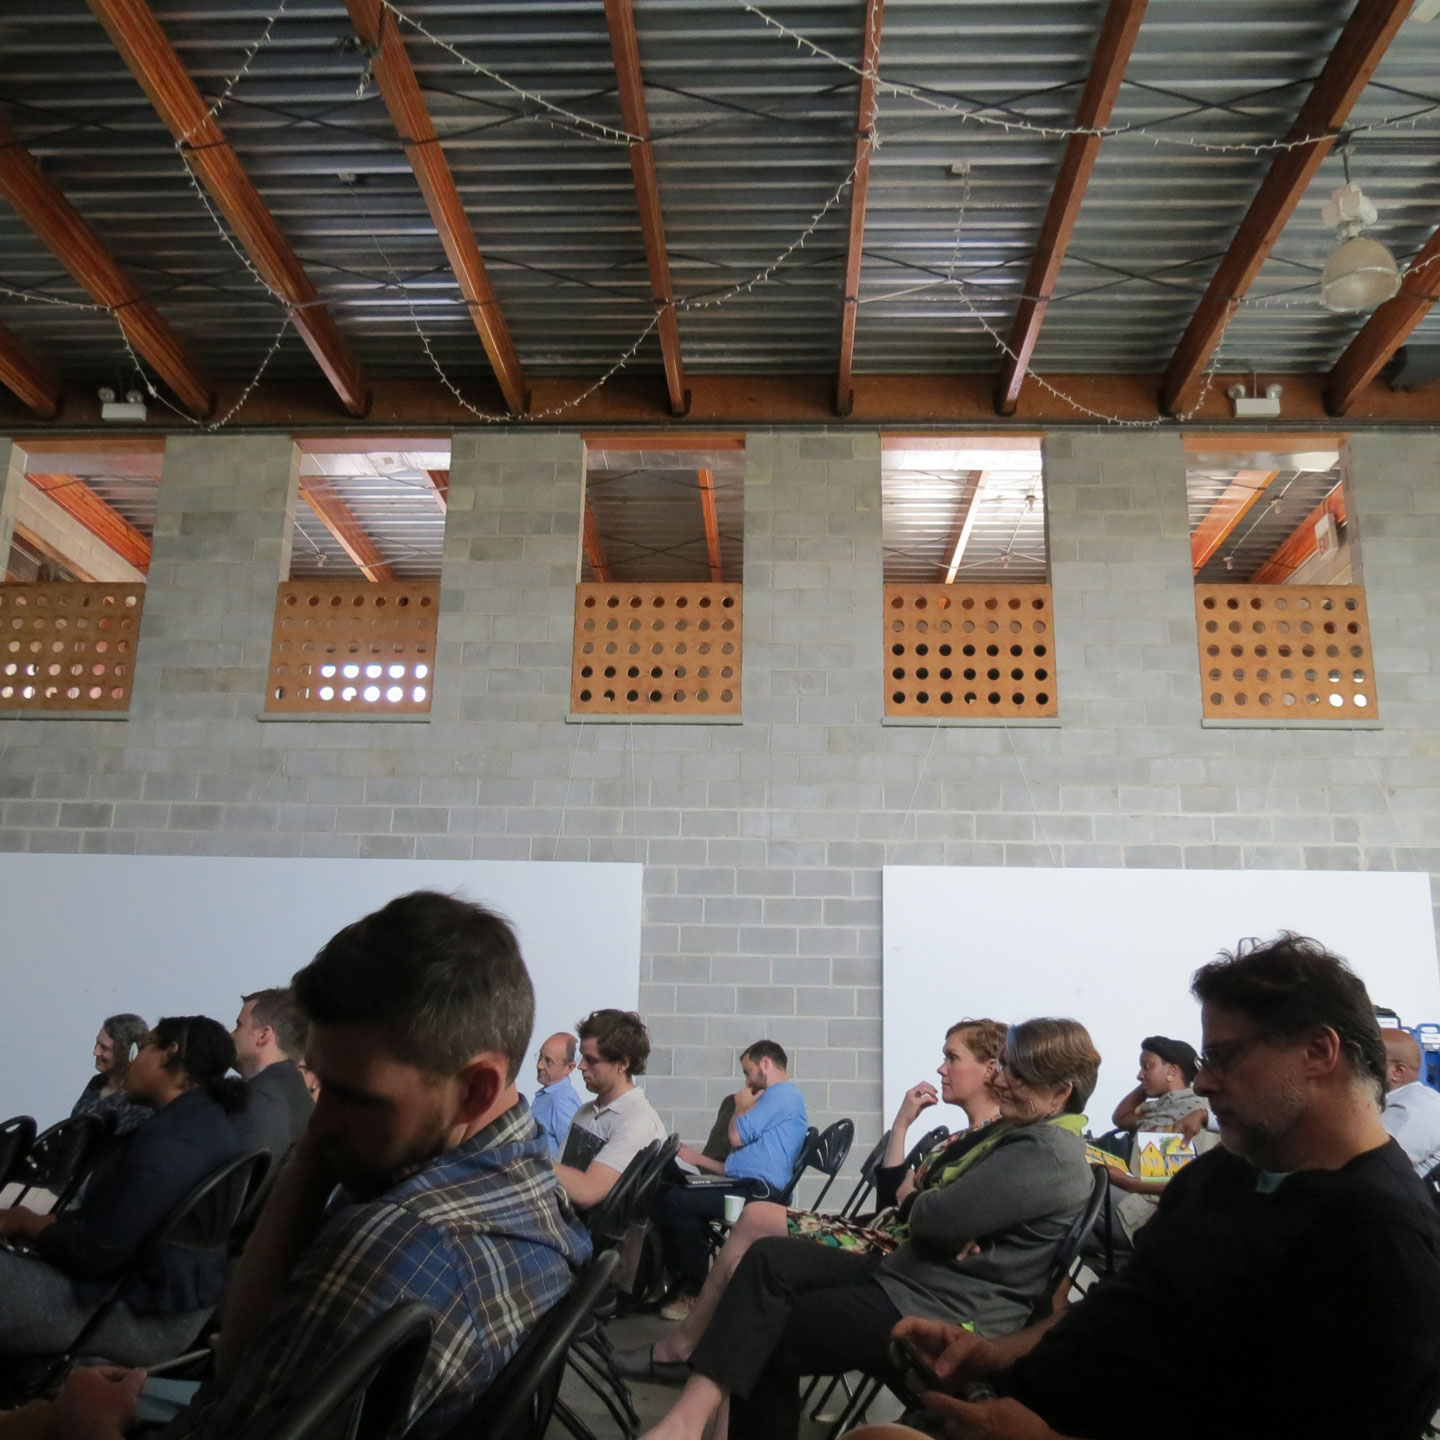 audience members listen at the Salvage 3.0 symposium